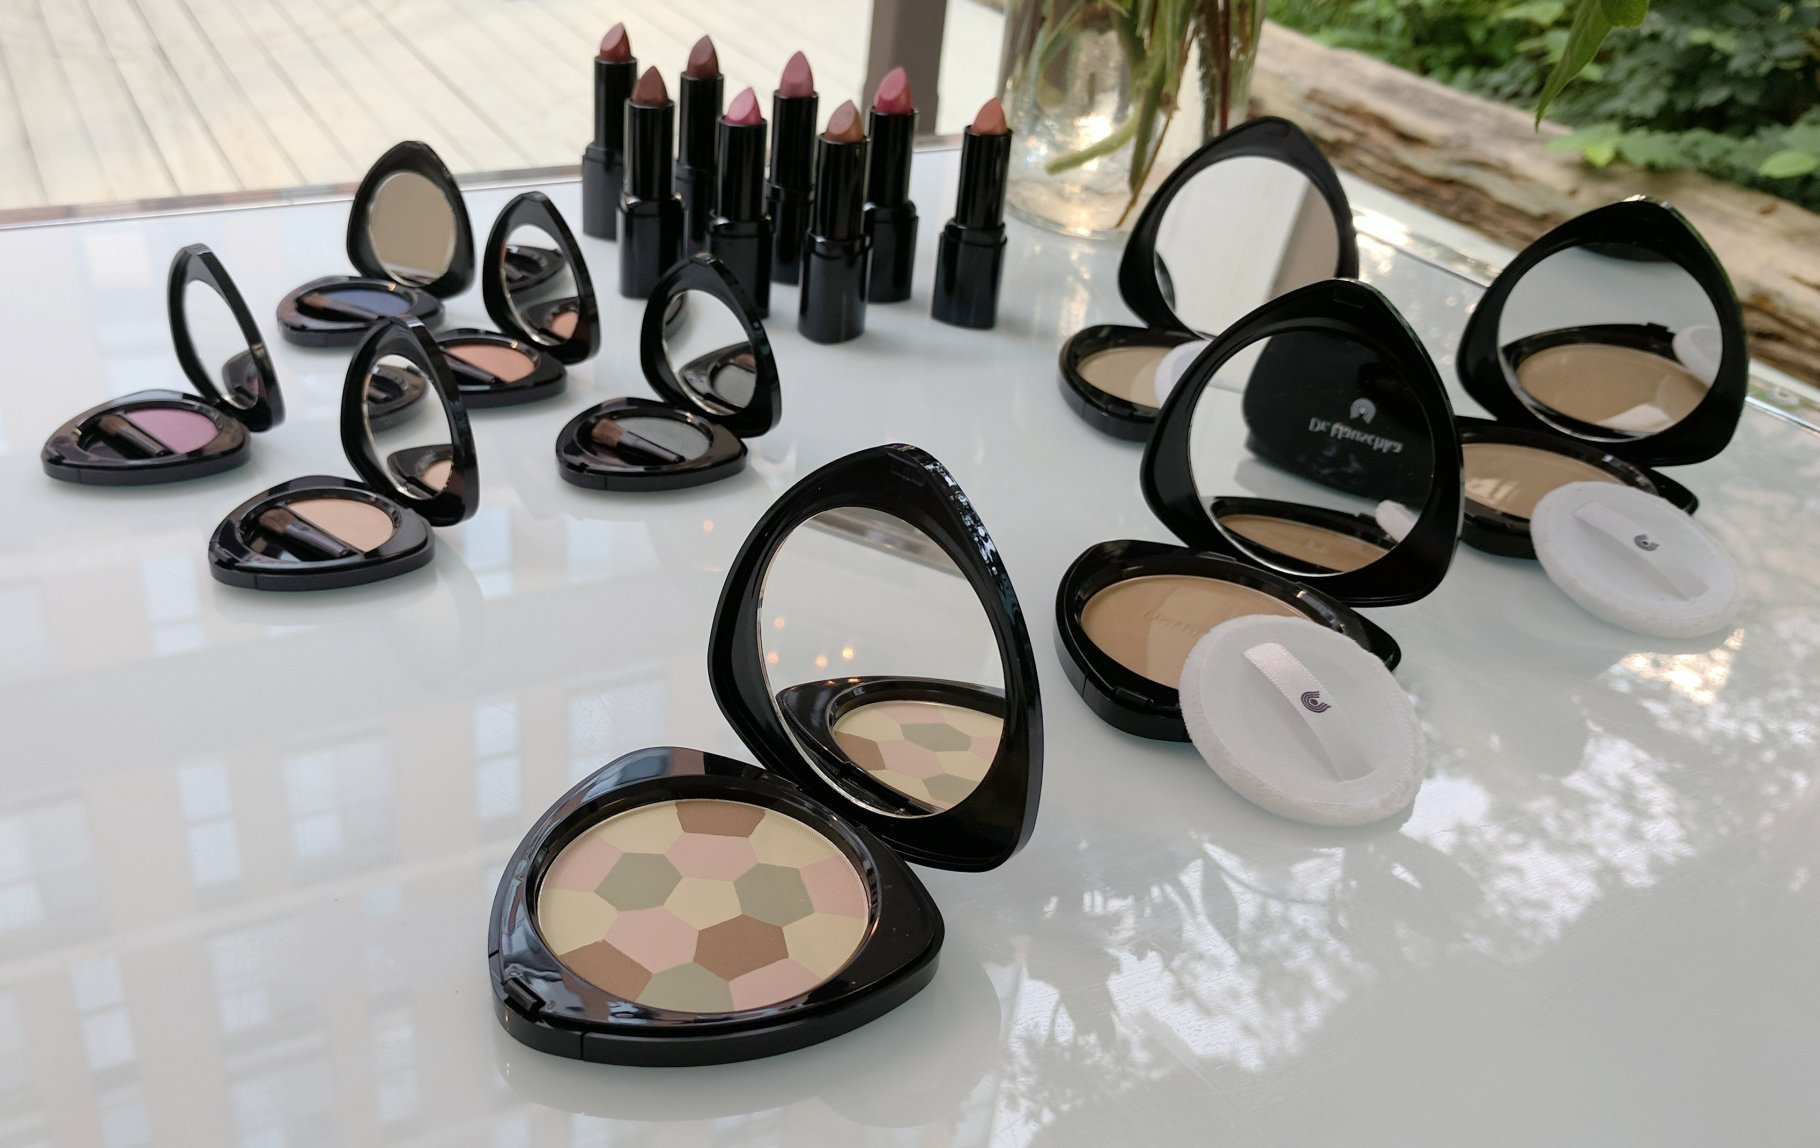 Dr.Hauschka Natural Makeup Re-Launch